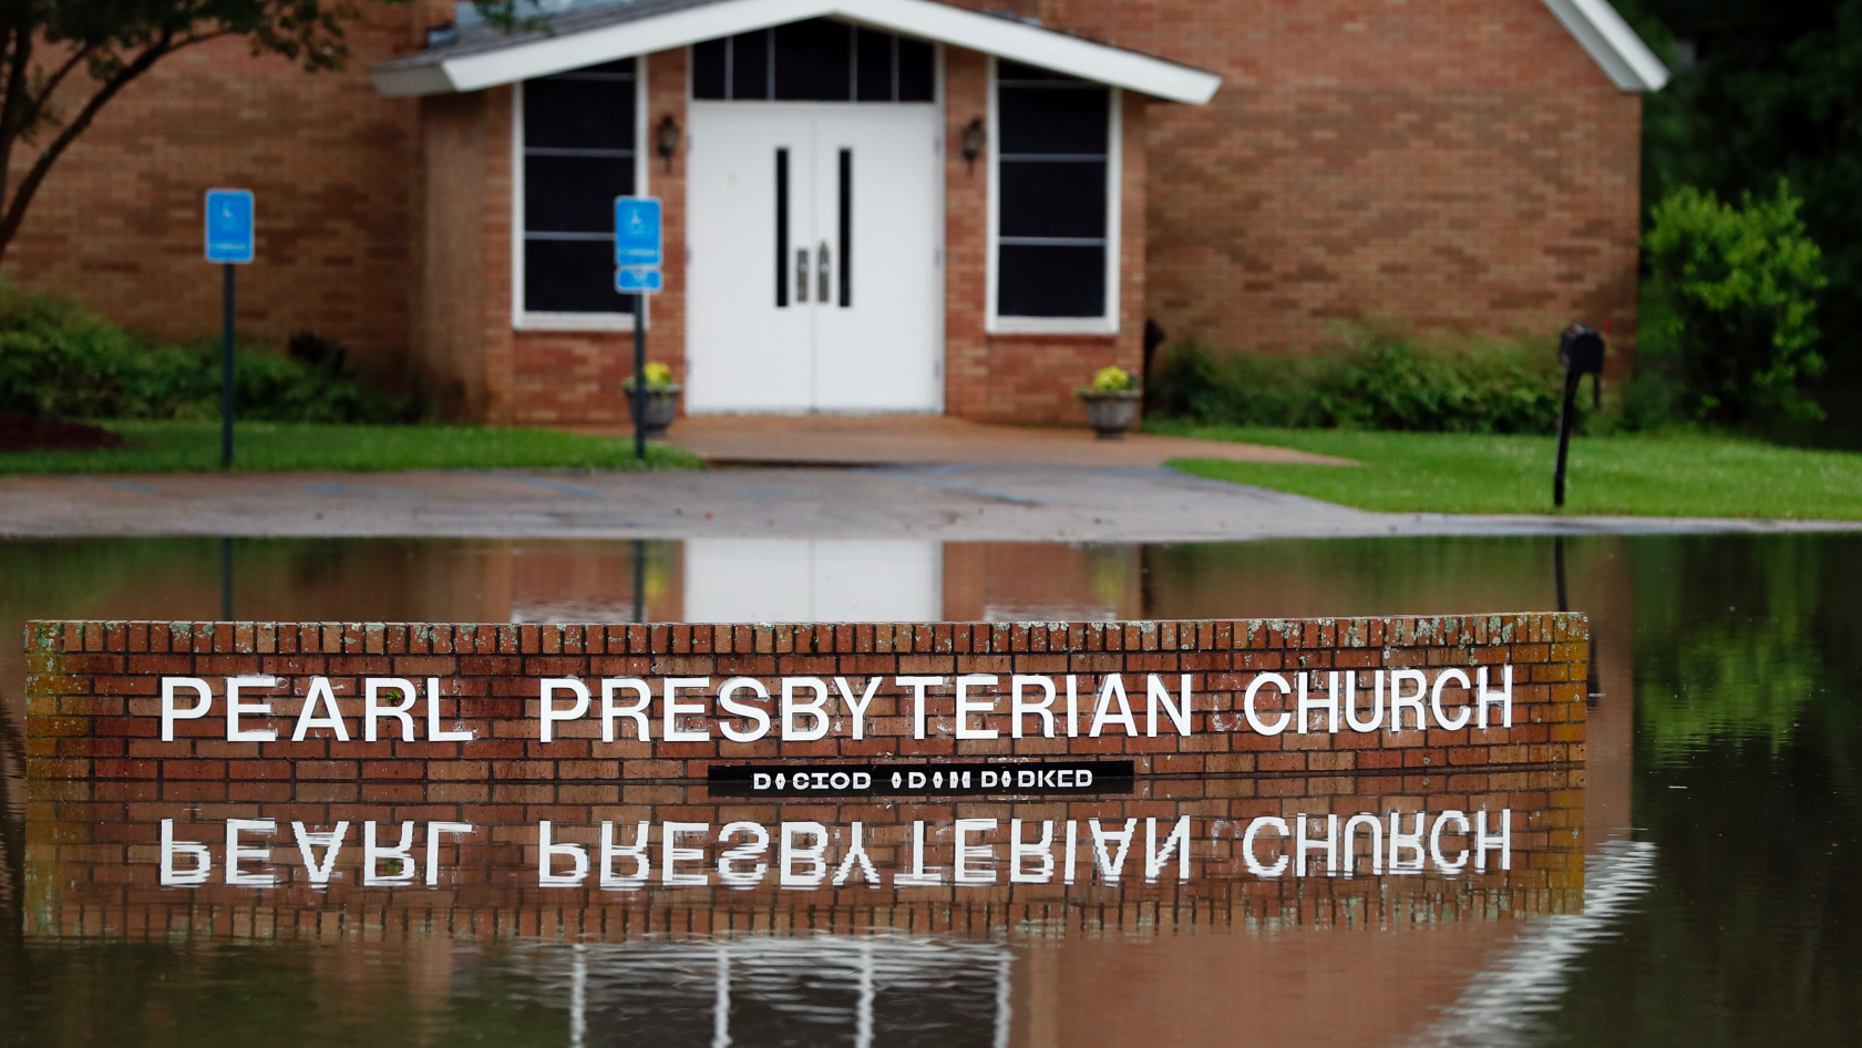 The Pearl Presbyterian Church's sign is reflected in floodwaters in Pearl, Miss., on Thursday, May 9, 2019. There is no pond on the property and the flash flooding filled up the parking lot as it surrounded the church. Strong winds, tornado warnings and substantial rains added to the flash flooding throughout Mississippi including this area of downtown Jackson, Miss., Thursday, May 9, 2019. (AP Photo/Rogelio V. Solis)